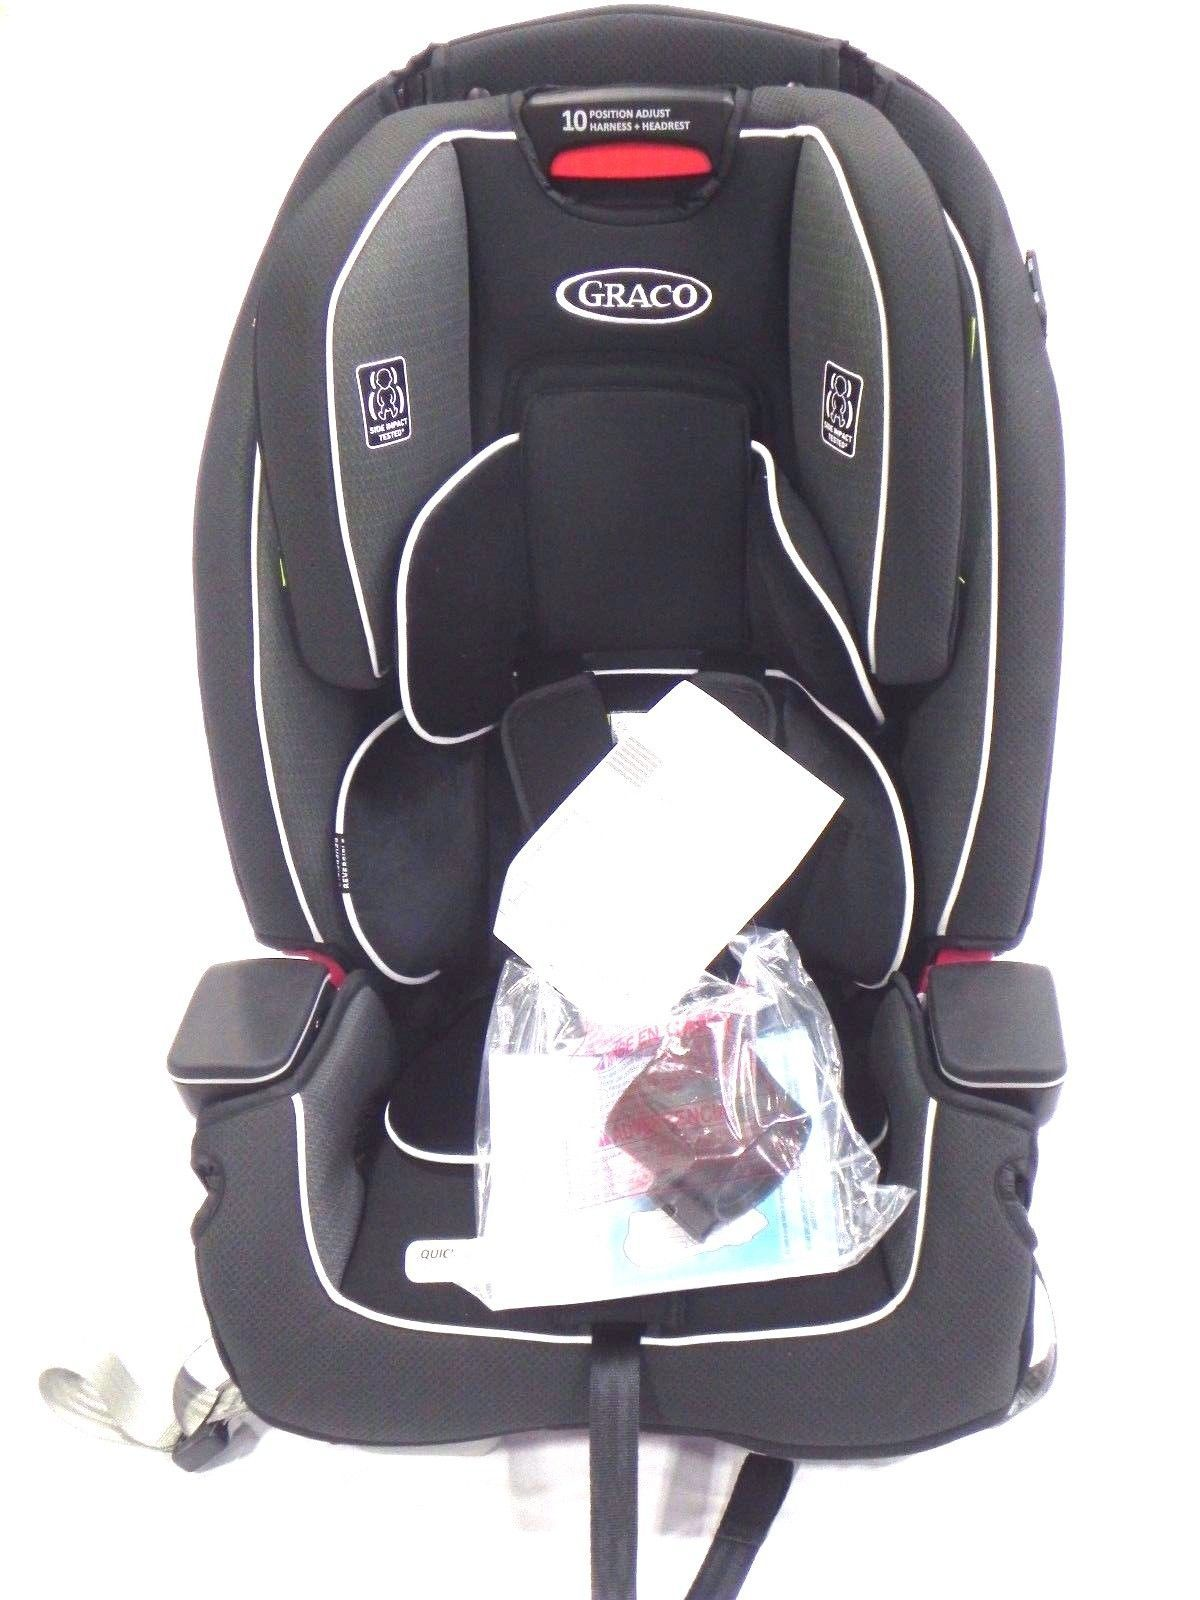 Graco Milestone Car Seat Isofix Graco Milestone All In One Convertible Car Seat Gotham